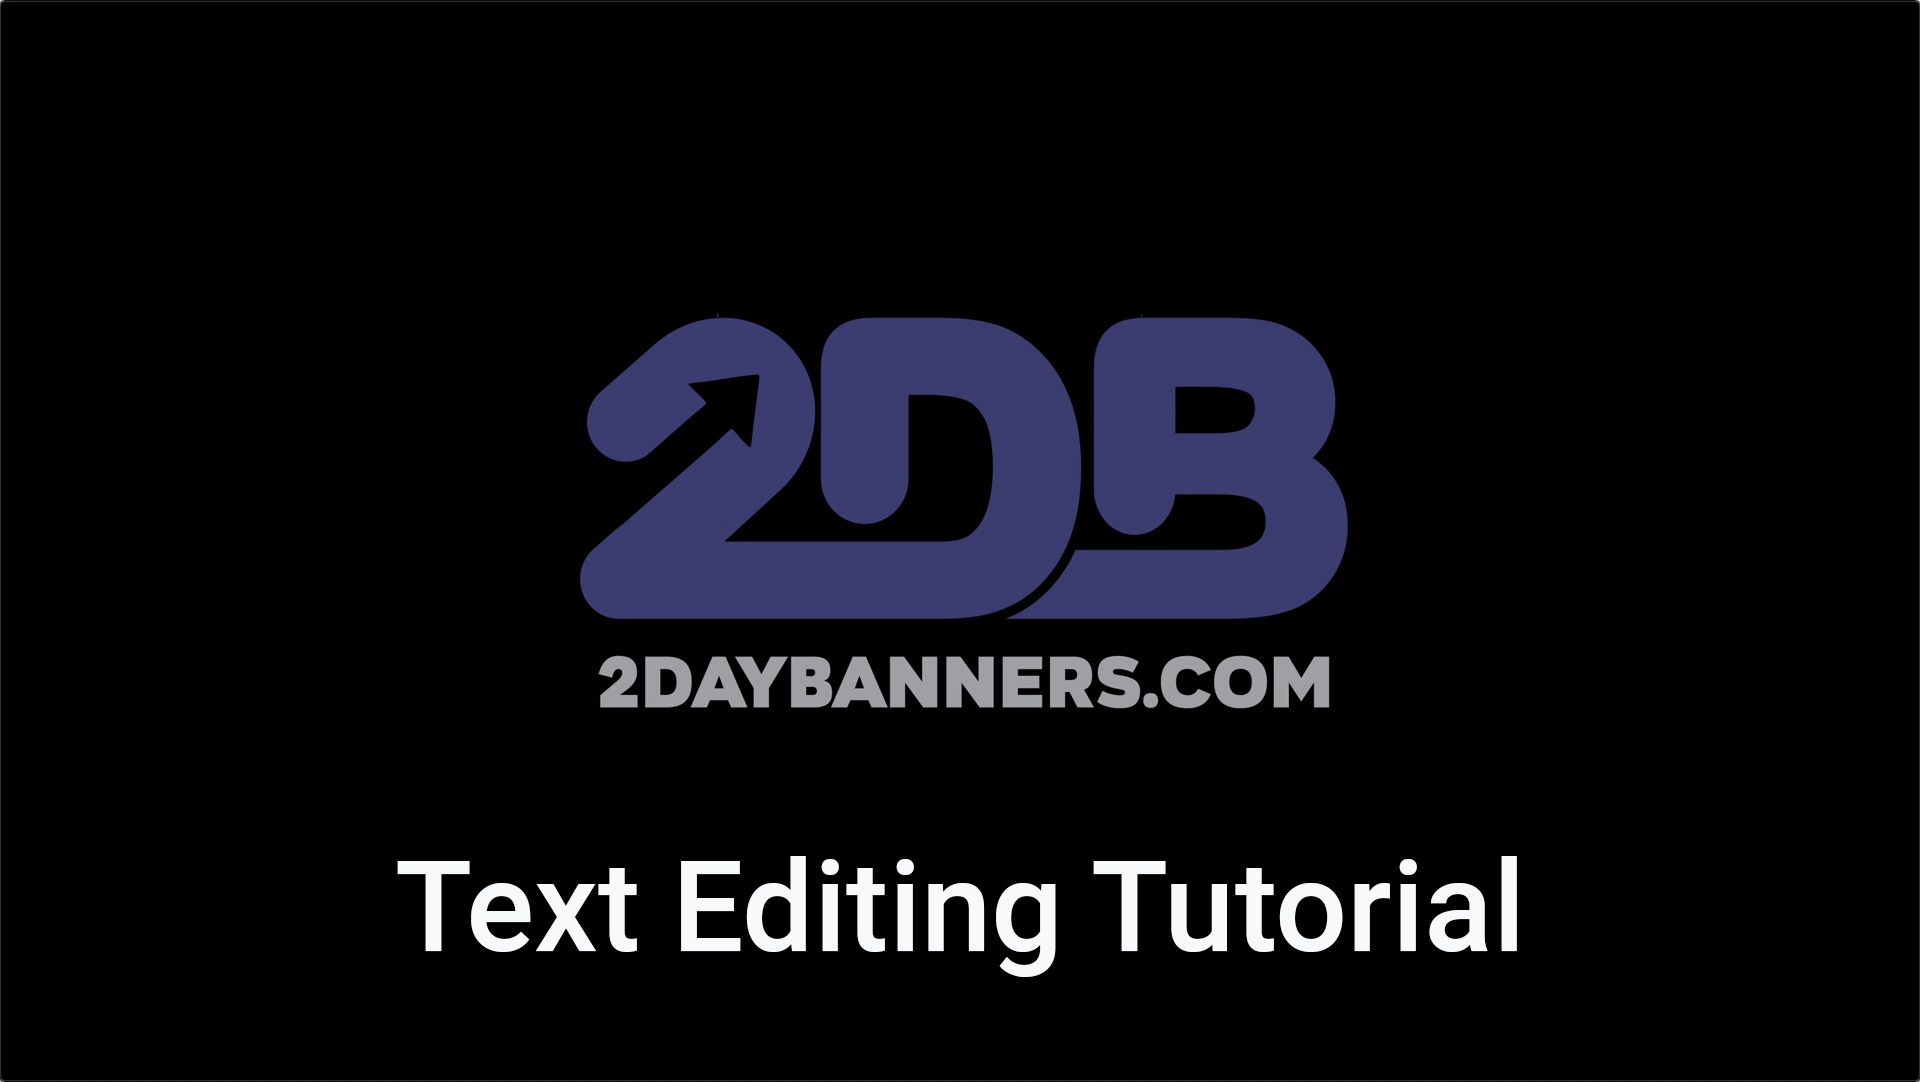 2DayBanners Text Editing Tutorial